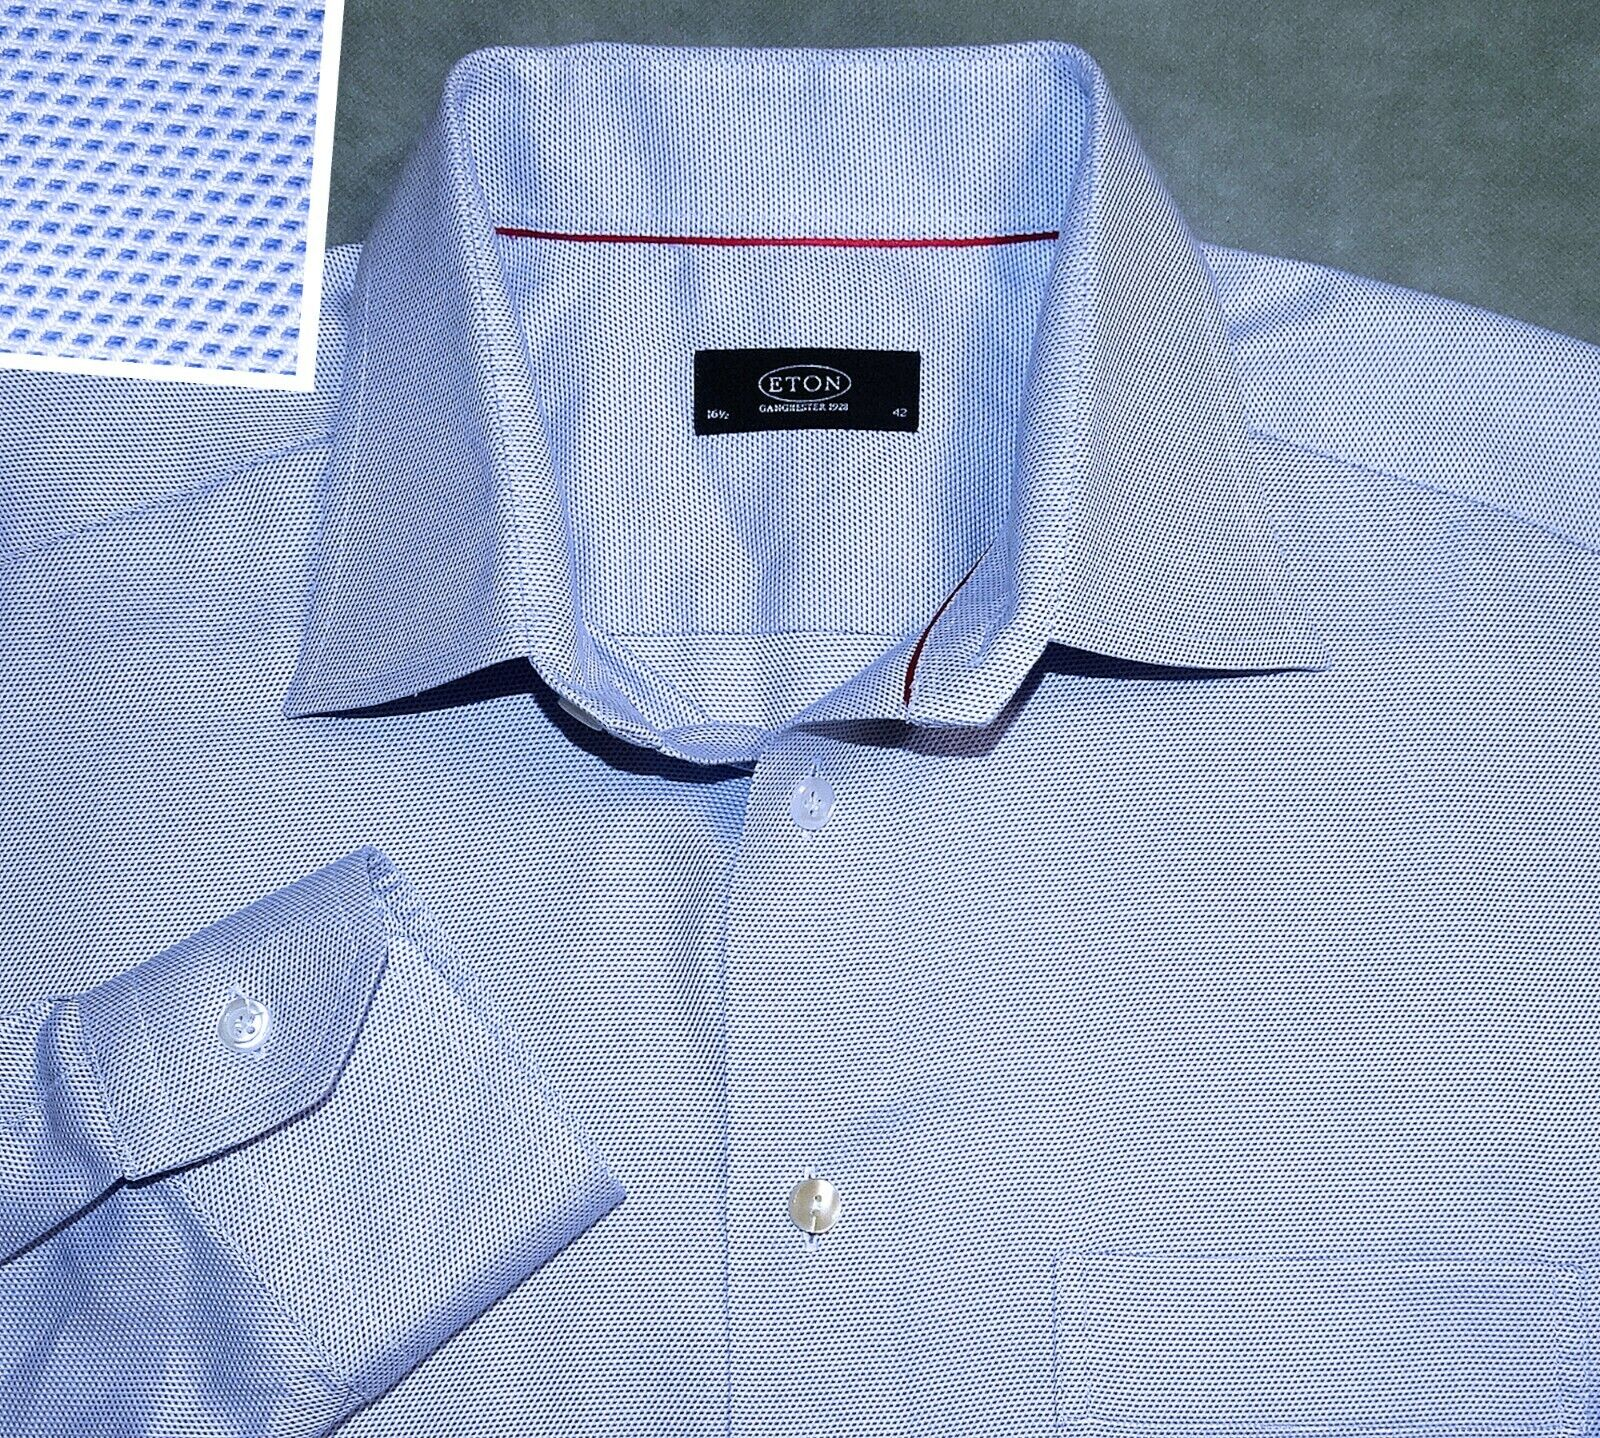 FINEST 16 1 2 42 36 ETON blueE BIRDSEYE COTTON MENS SHIRT